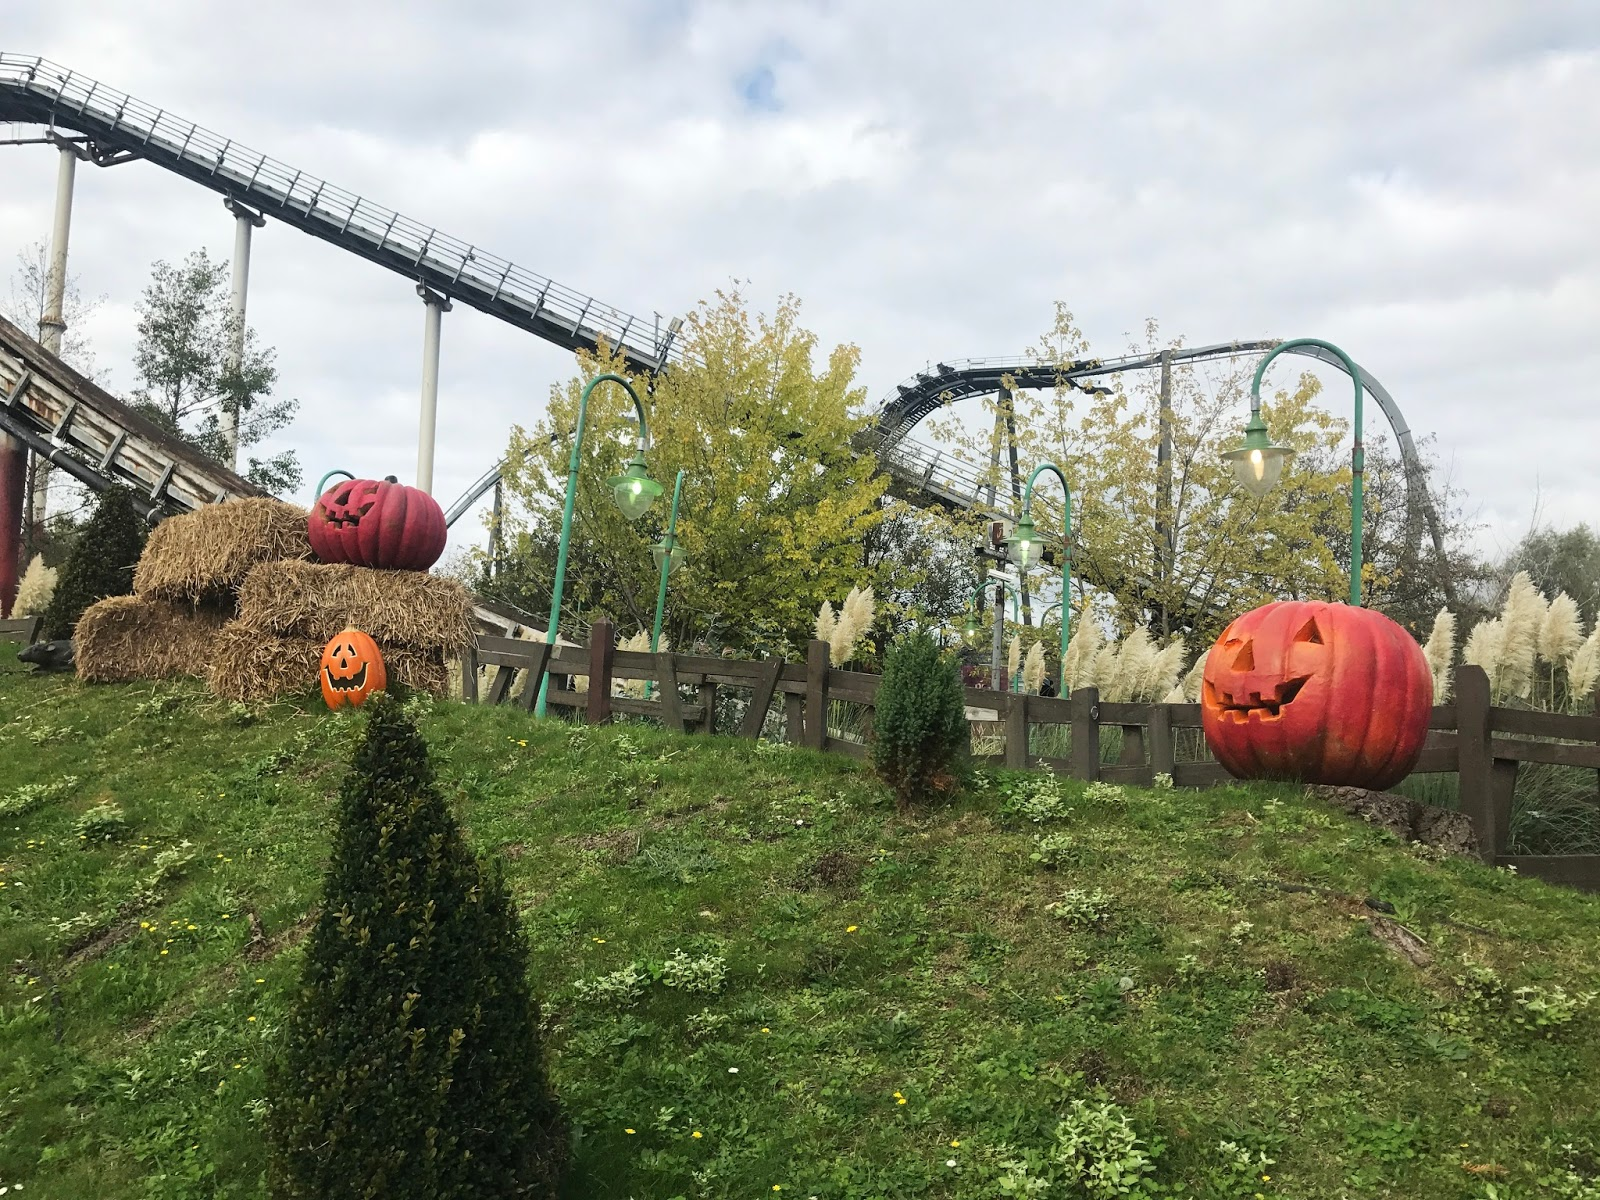 thorpe park the walking dead fright nights | wanderlust daydreaming